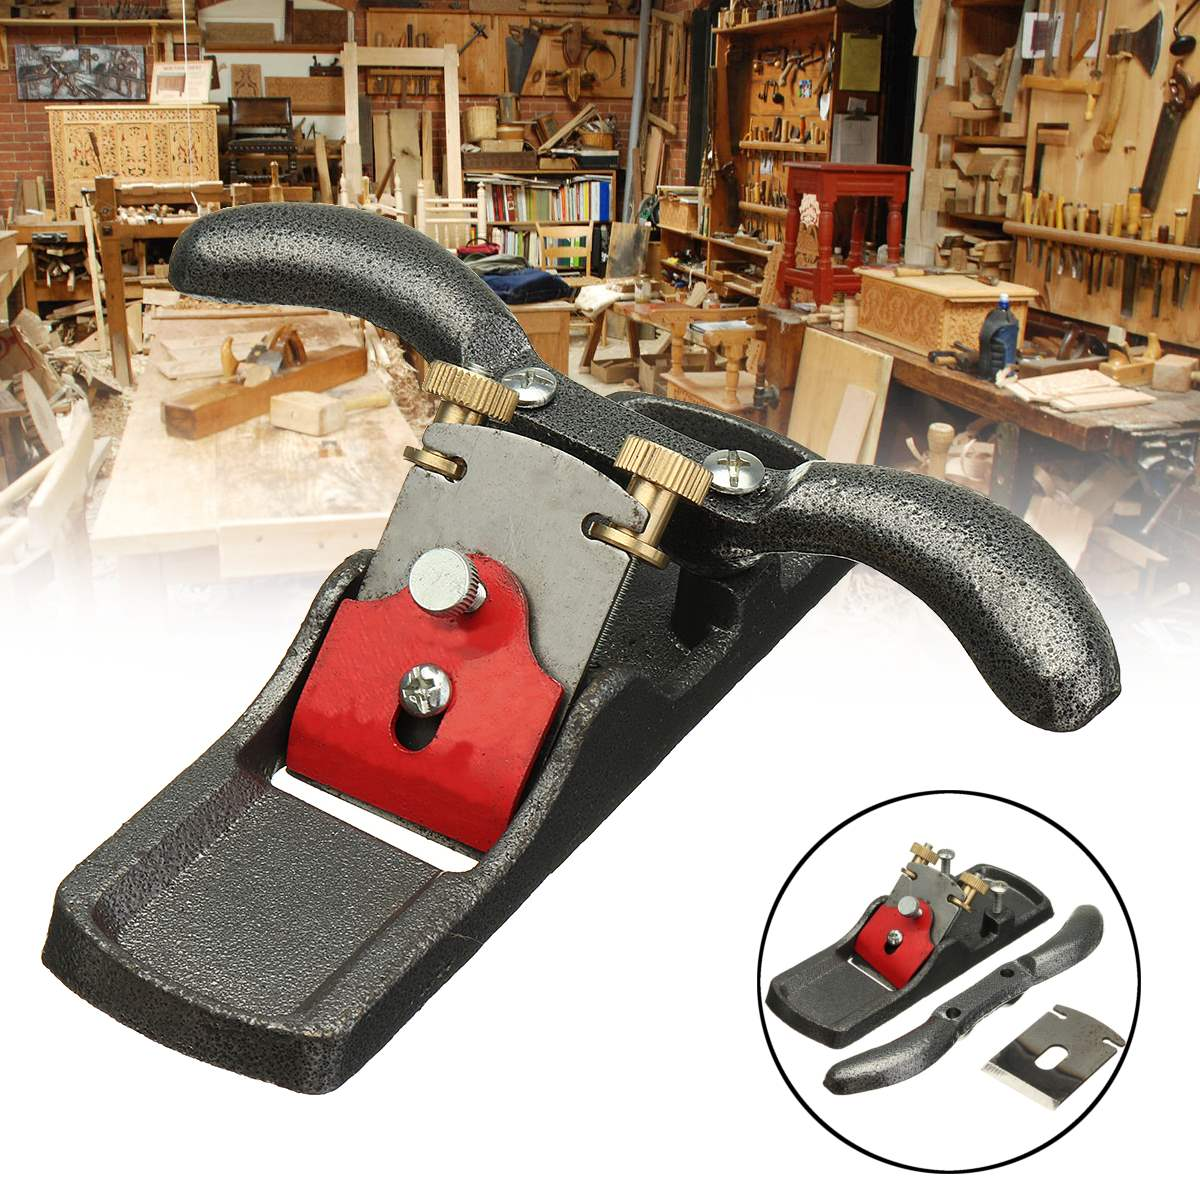 Malleable iron Adjustable Woodworking Tools Woodworking Planer Wood Planer Planing Wood Hand Plane Carpenter Hand ToolMalleable iron Adjustable Woodworking Tools Woodworking Planer Wood Planer Planing Wood Hand Plane Carpenter Hand Tool